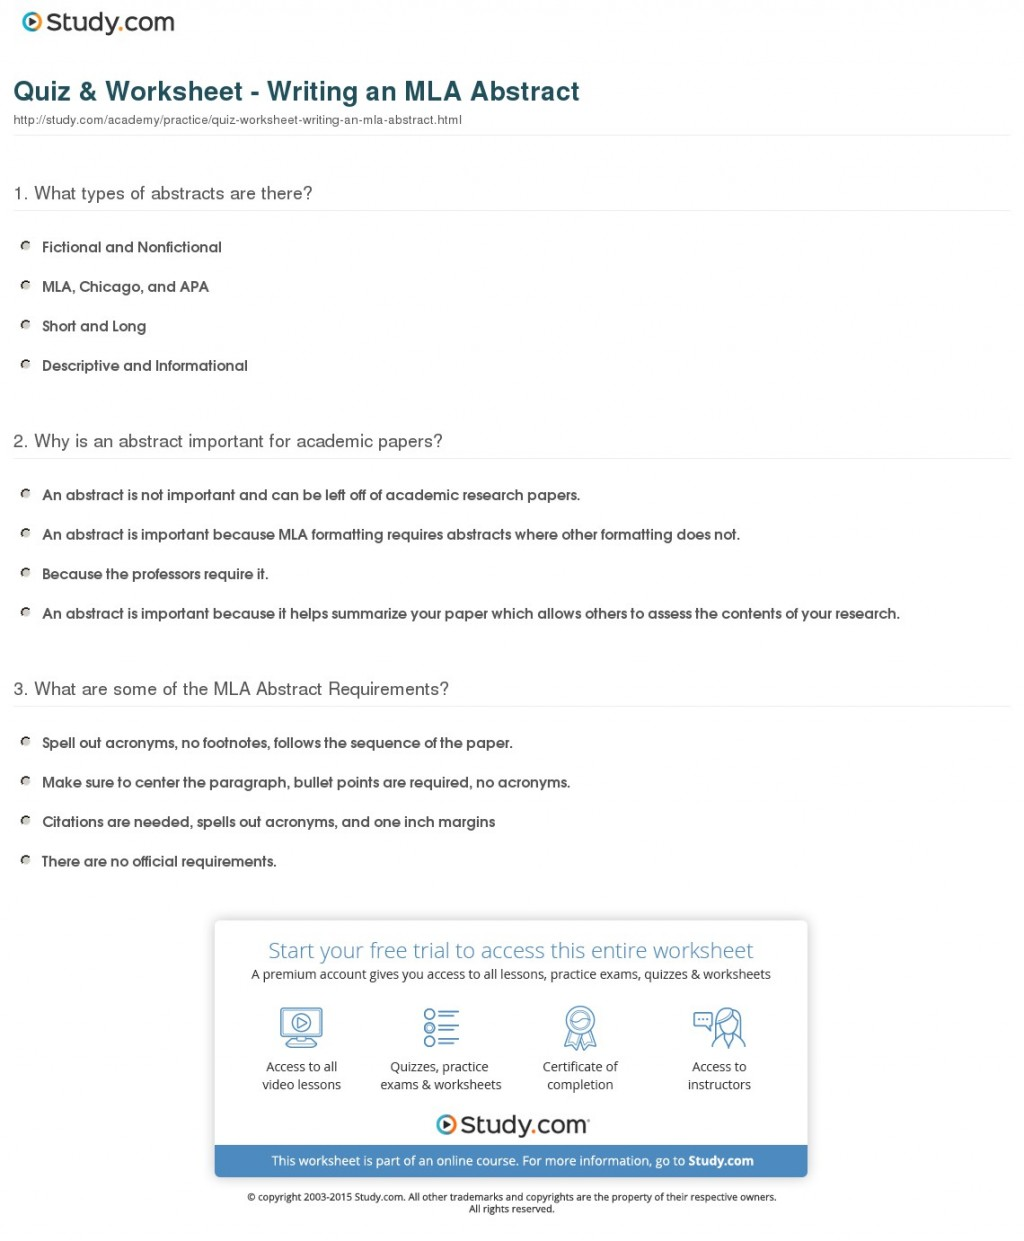 007 Quiz Worksheet Writing An Mla Abstract For Research Awesome Paper Example Large